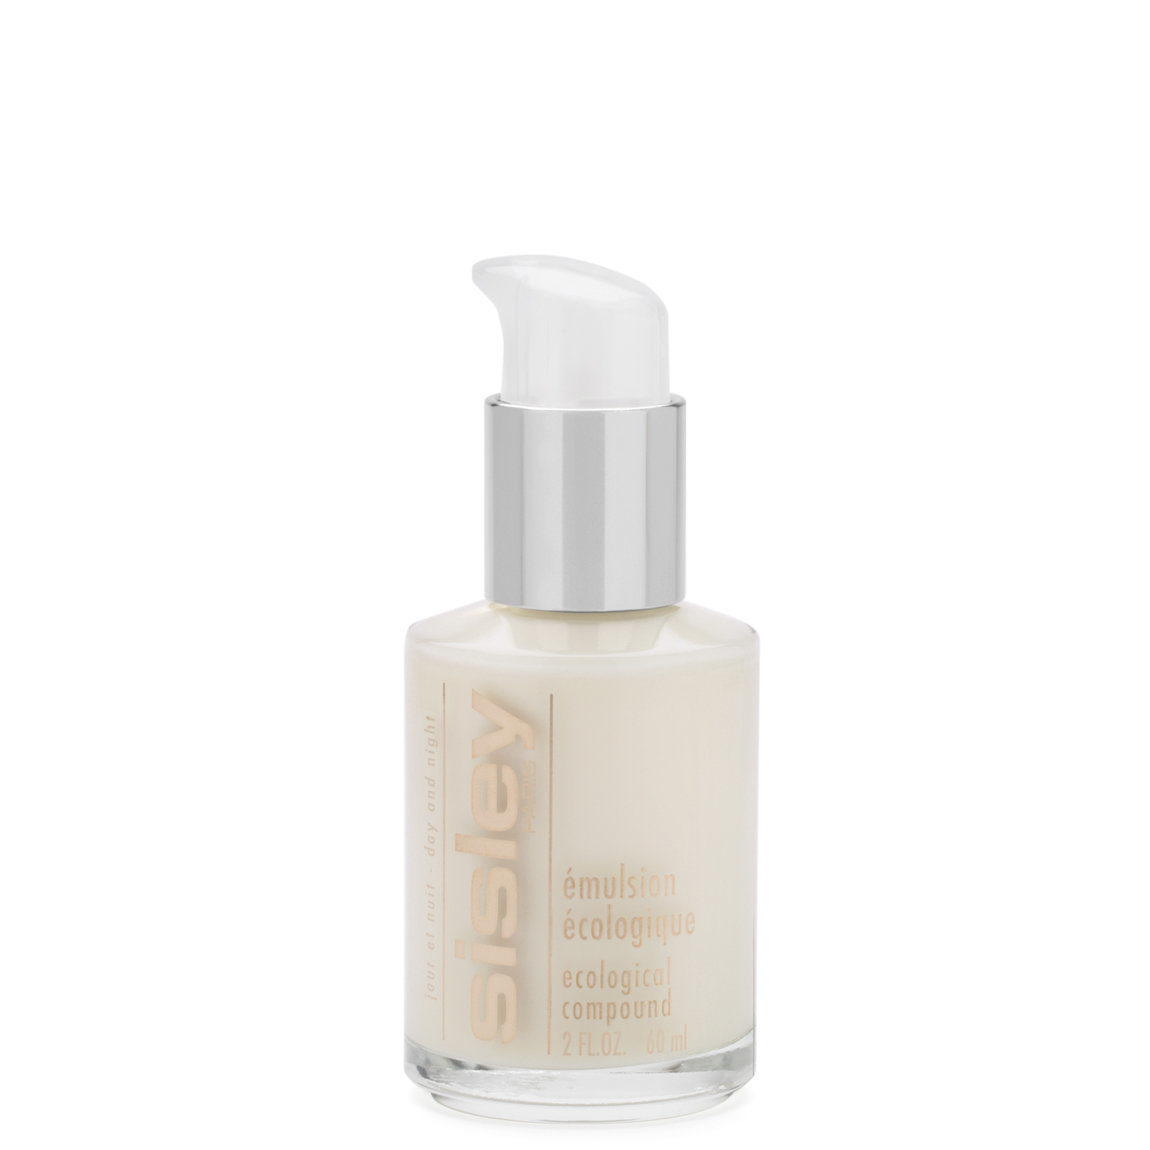 Sisley-Paris Ecological Compound 60 ml product swatch.